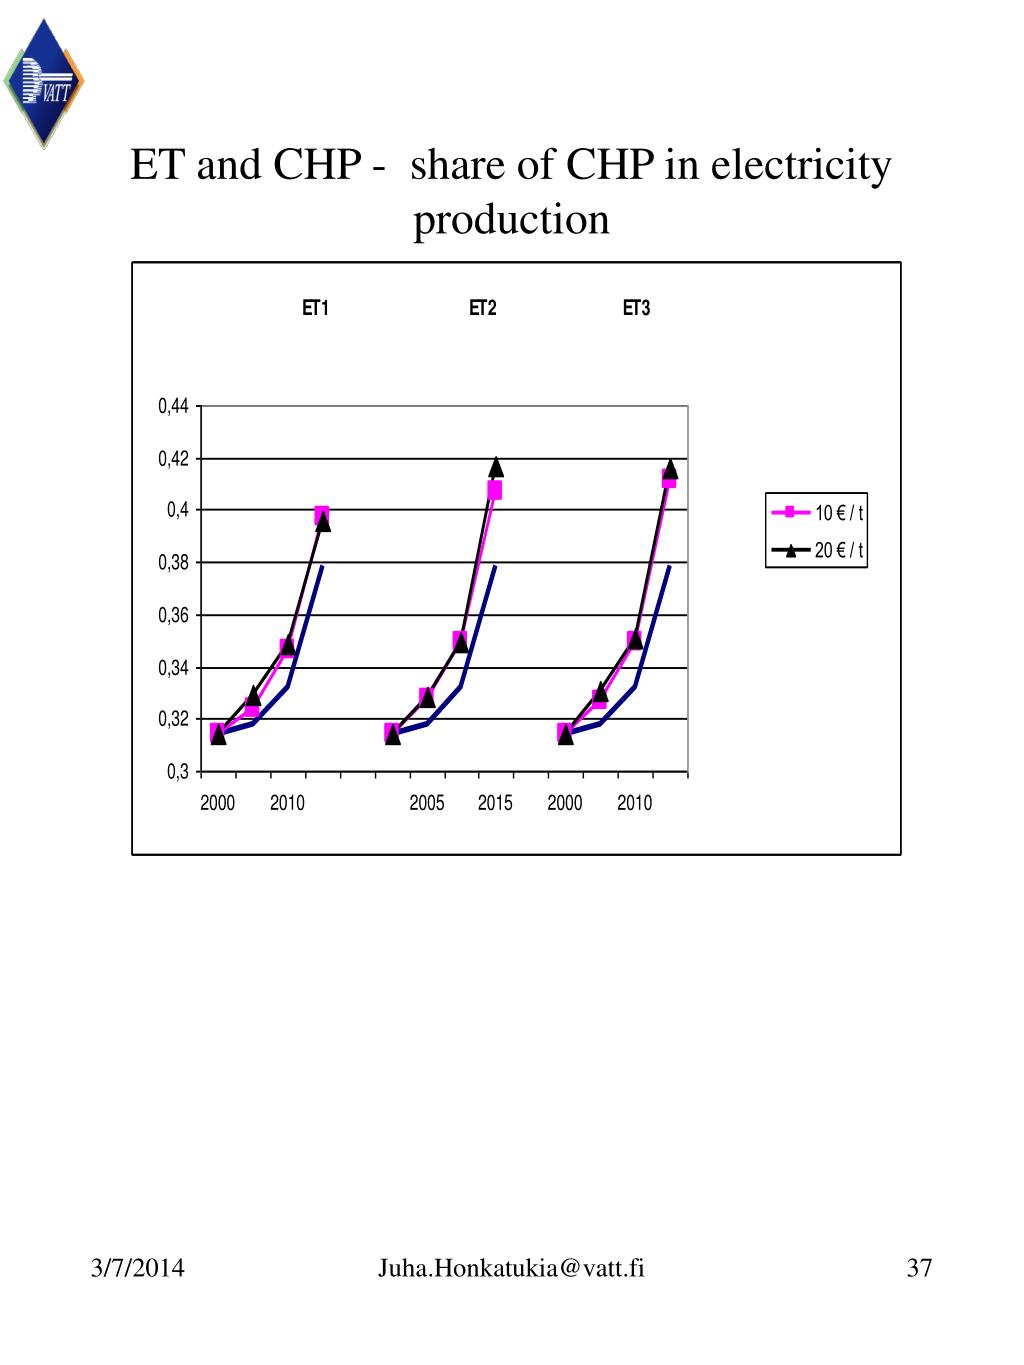 ET and CHP -  share of CHP in electricity production